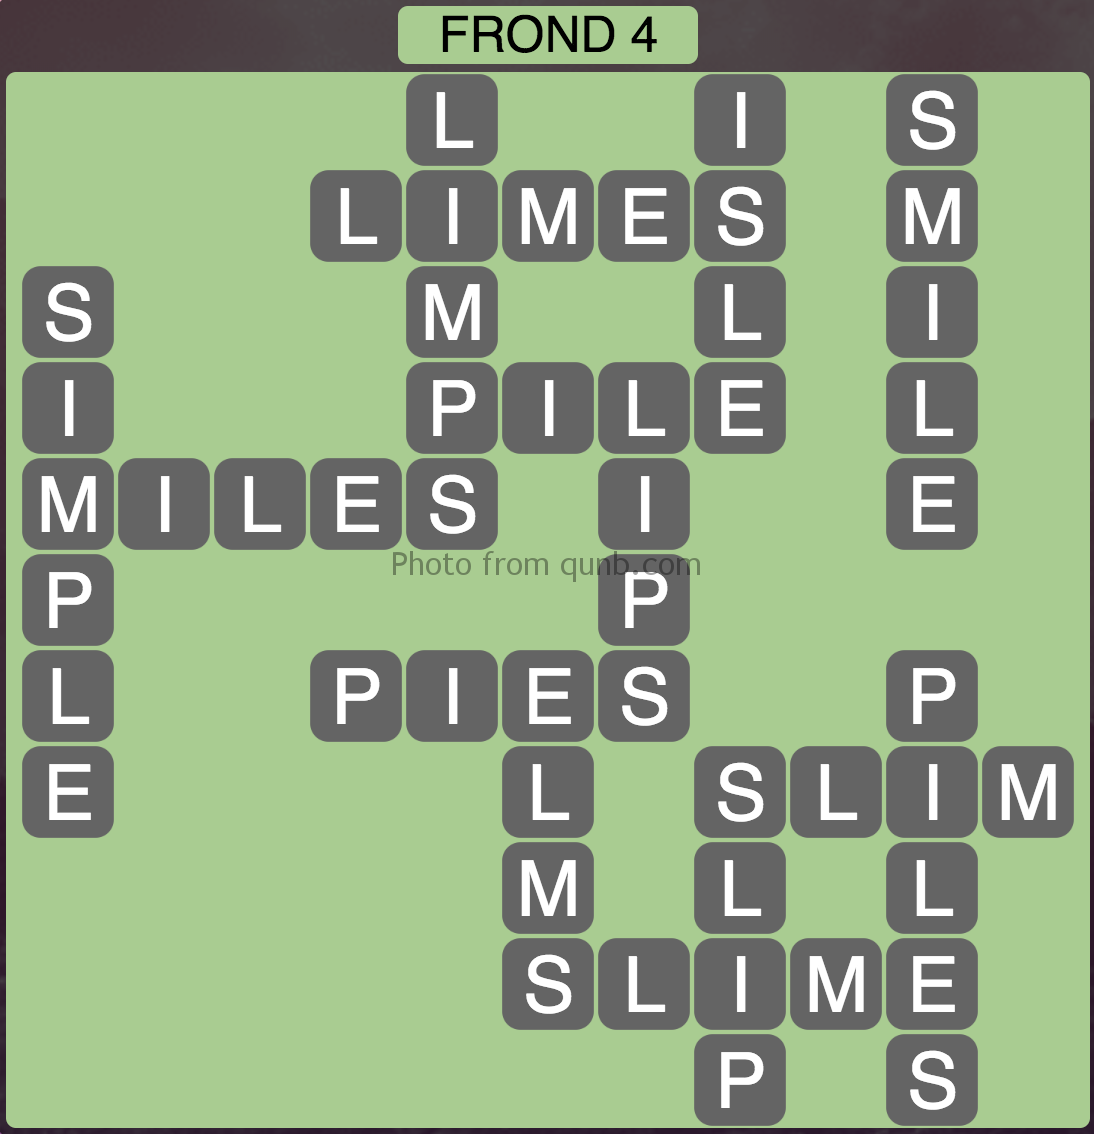 Wordscapes Frond 4 (Level 260) Answers